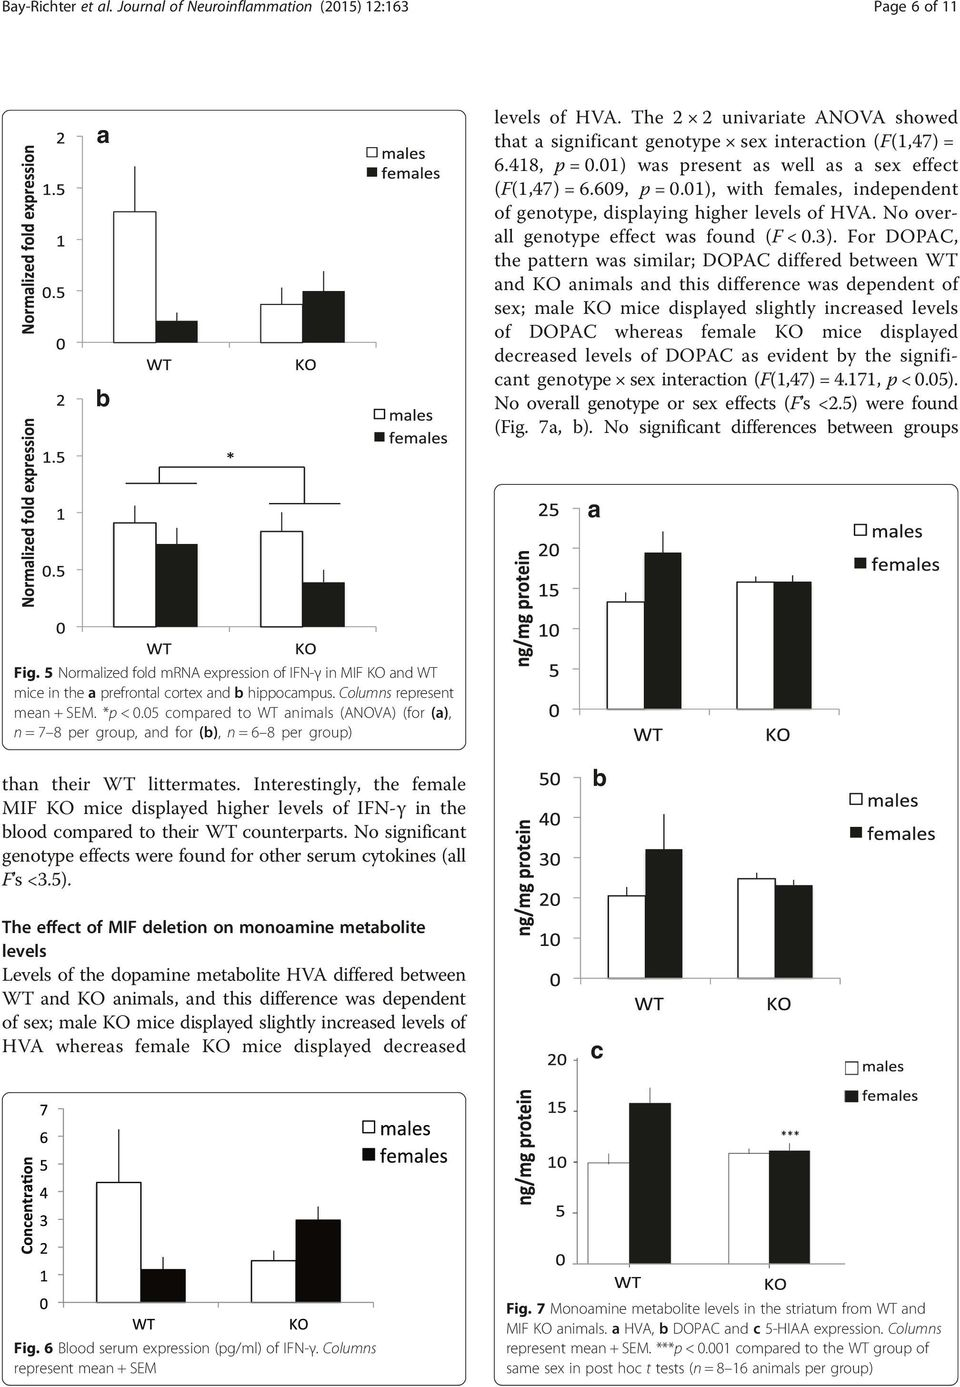 For DOPAC, the pattern was similar; DOPAC differed between WT and KO animals and this difference was dependent of sex; male KO mice displayed slightly increased levels of DOPAC whereas female KO mice